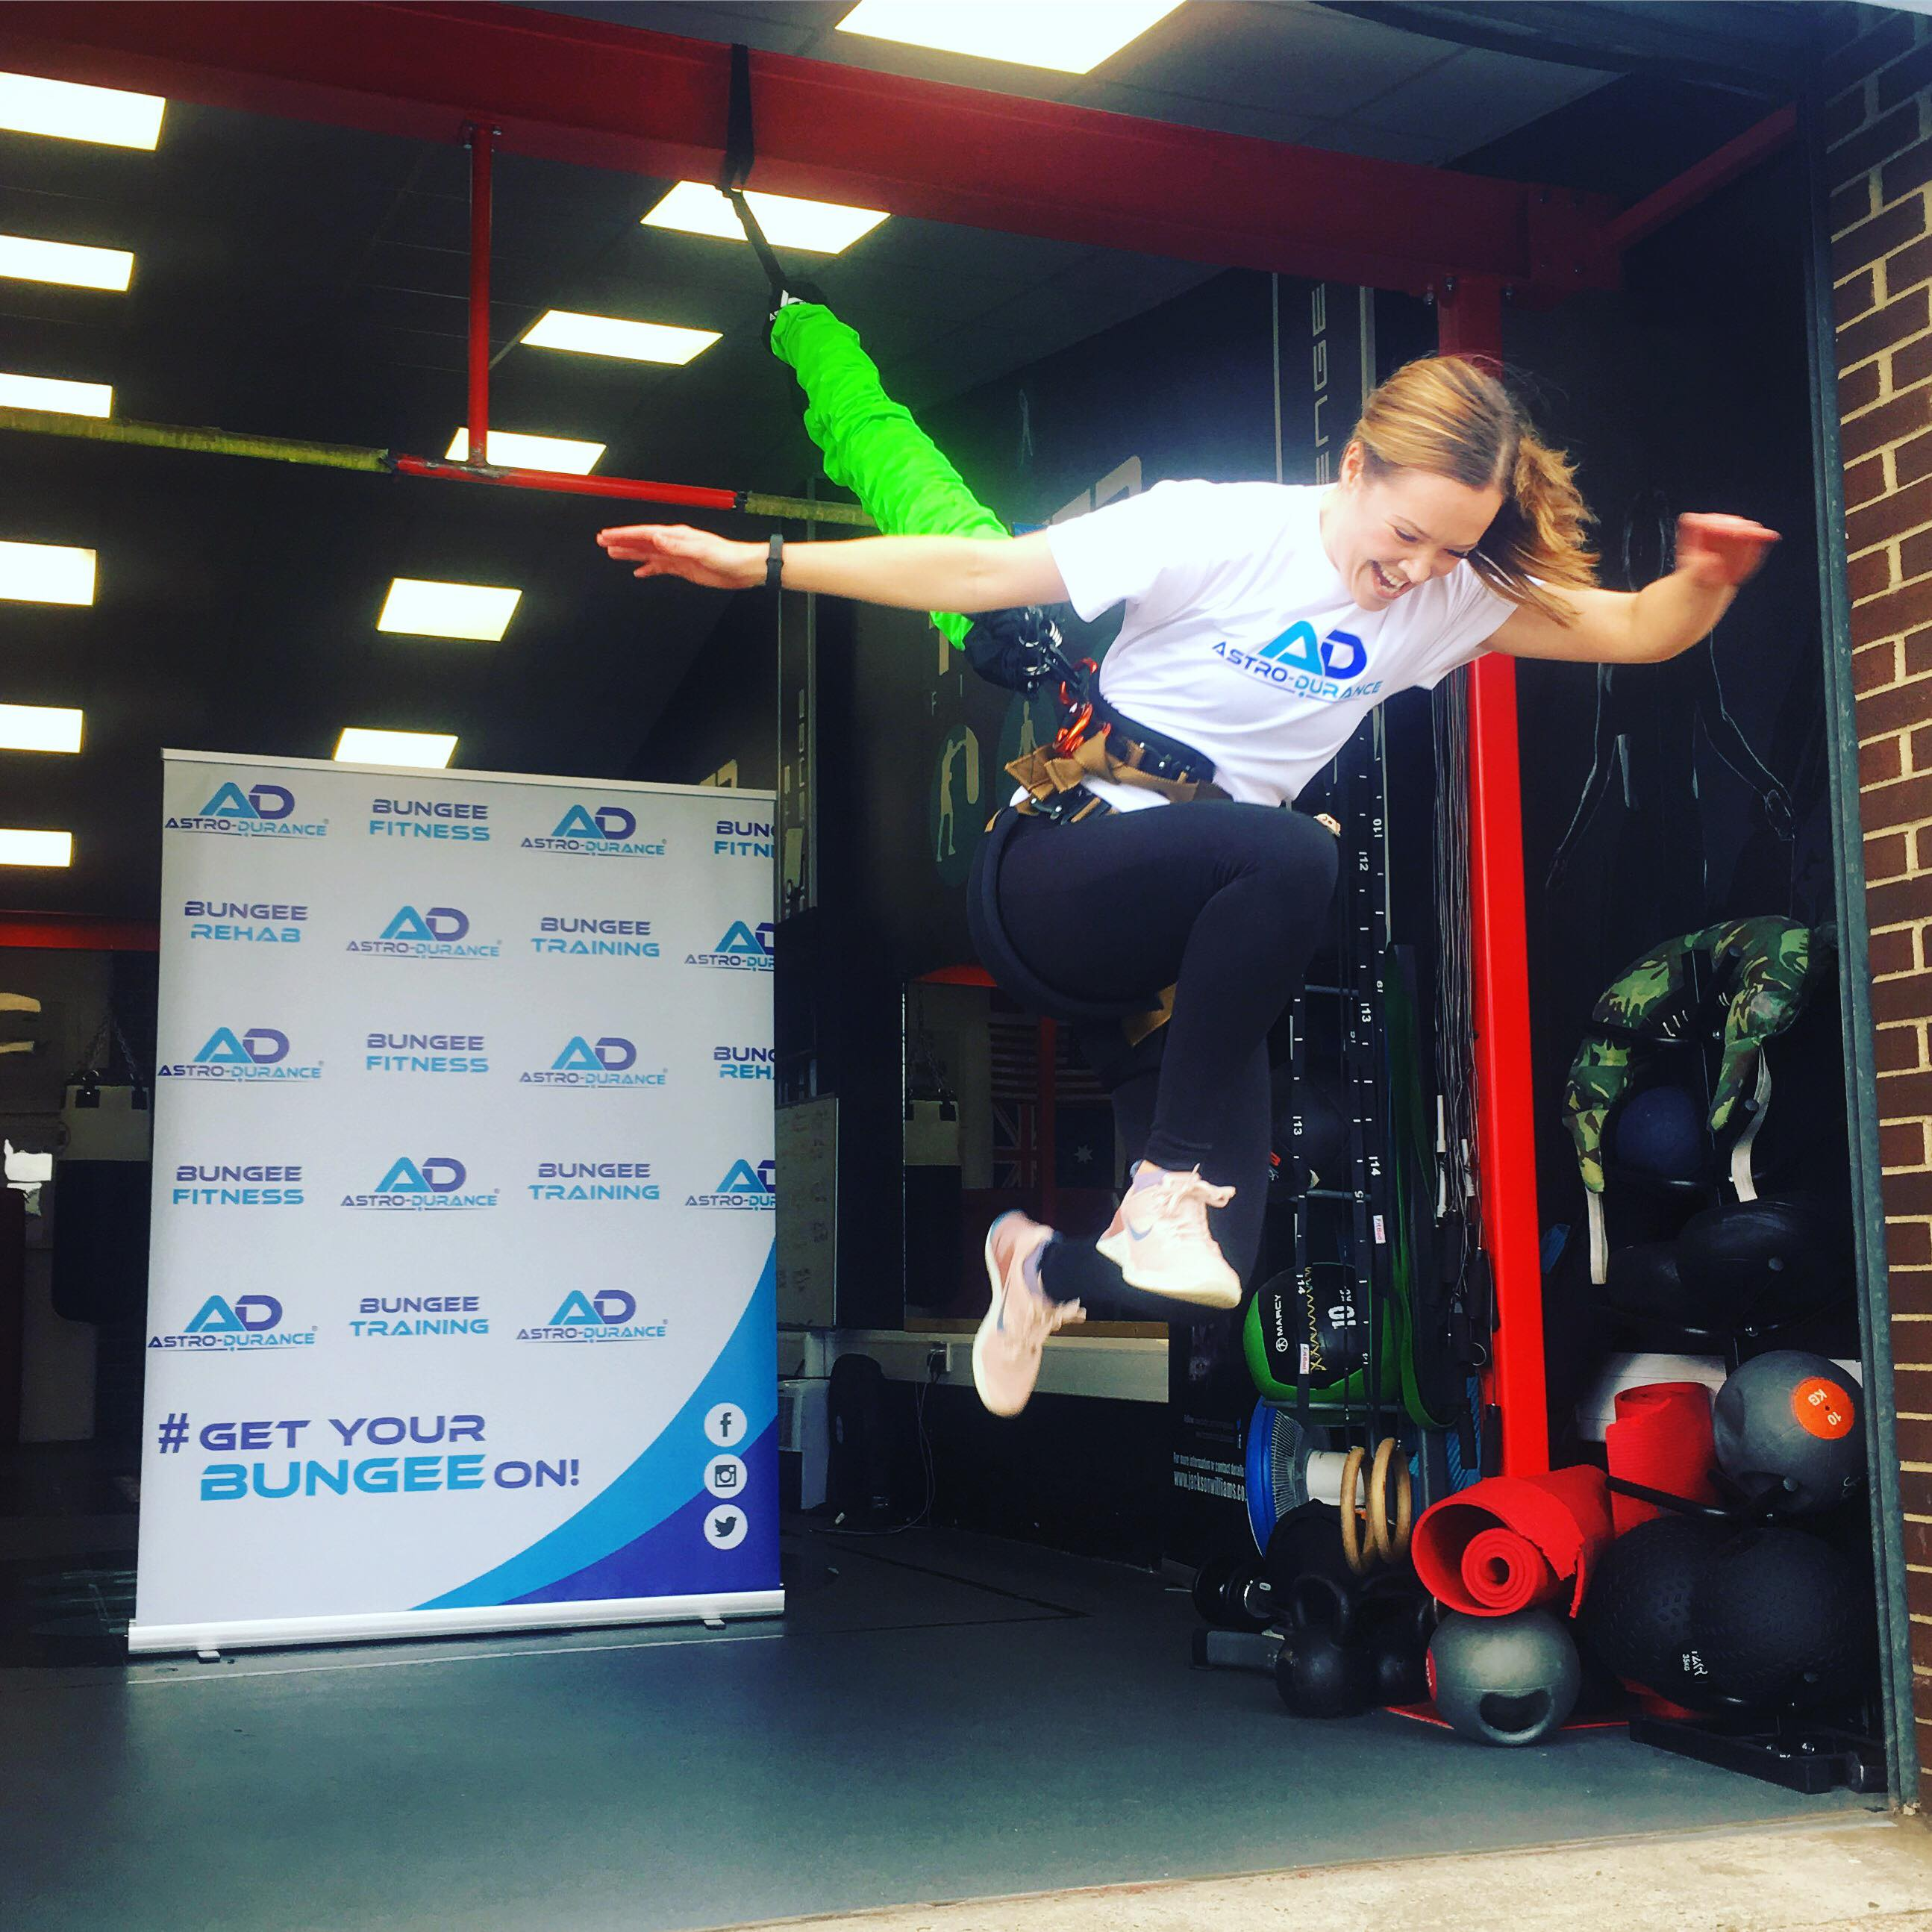 astro durance, bungee fitness, bungee fit, fitness, fitness craze, gym equipment, gym, new workout, norwich, norfolk, tower fitness, ollie matthews, robyn o'brien